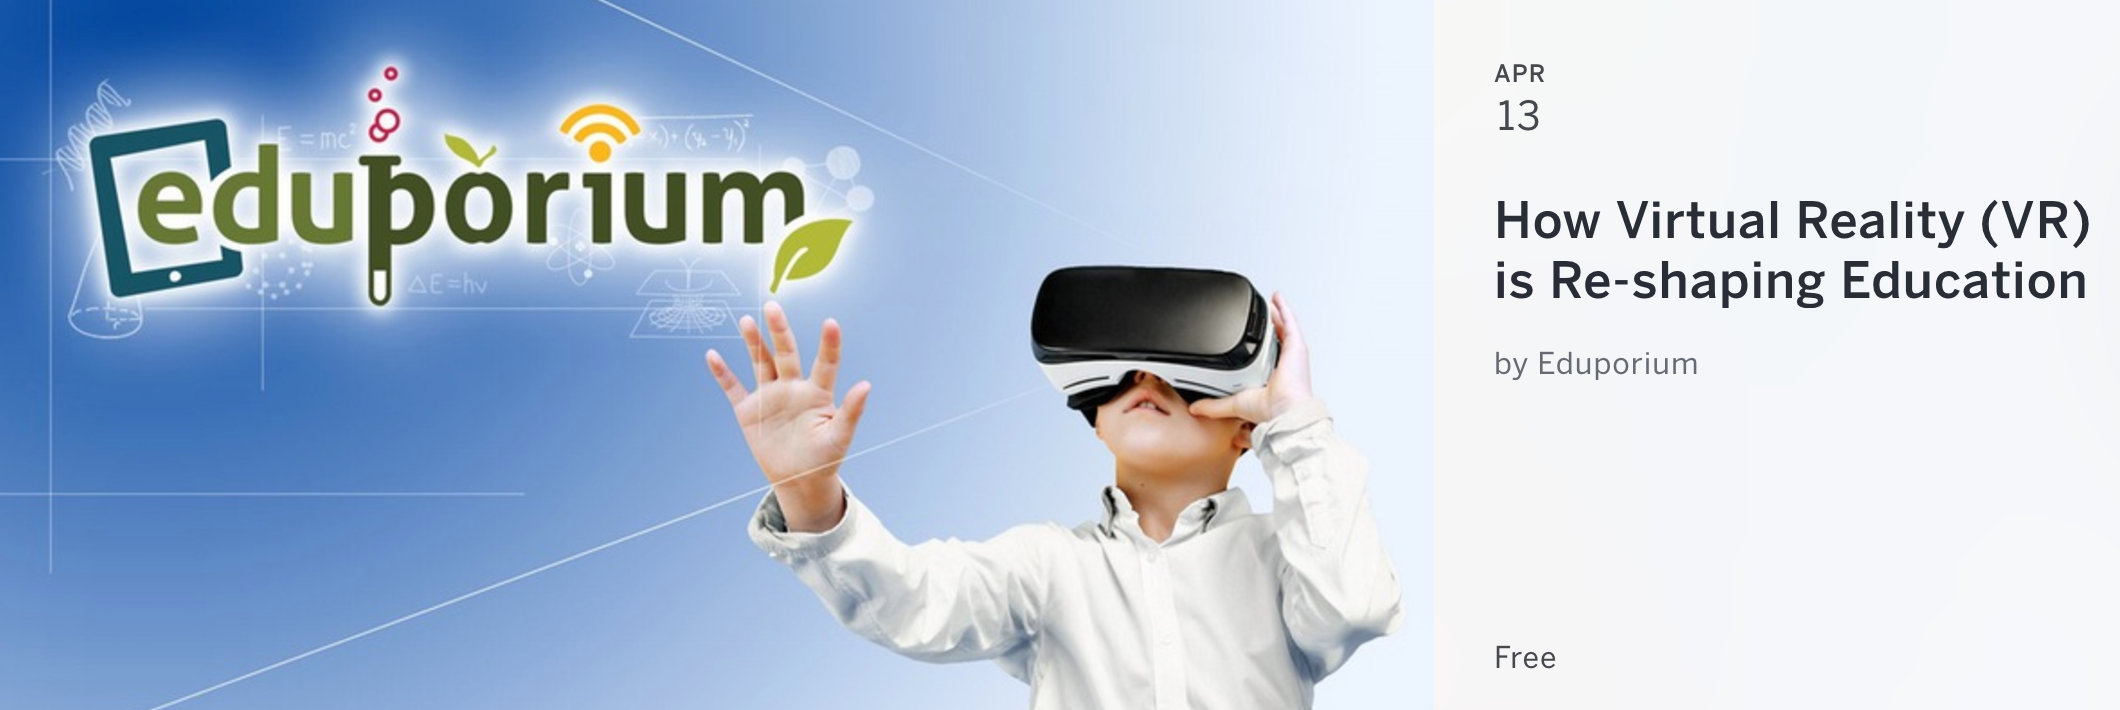 Sign up and join the event:https://www.eventbrite.com/e/how-virtual-reality-vr-is-re-shaping-education-tickets-33051731619